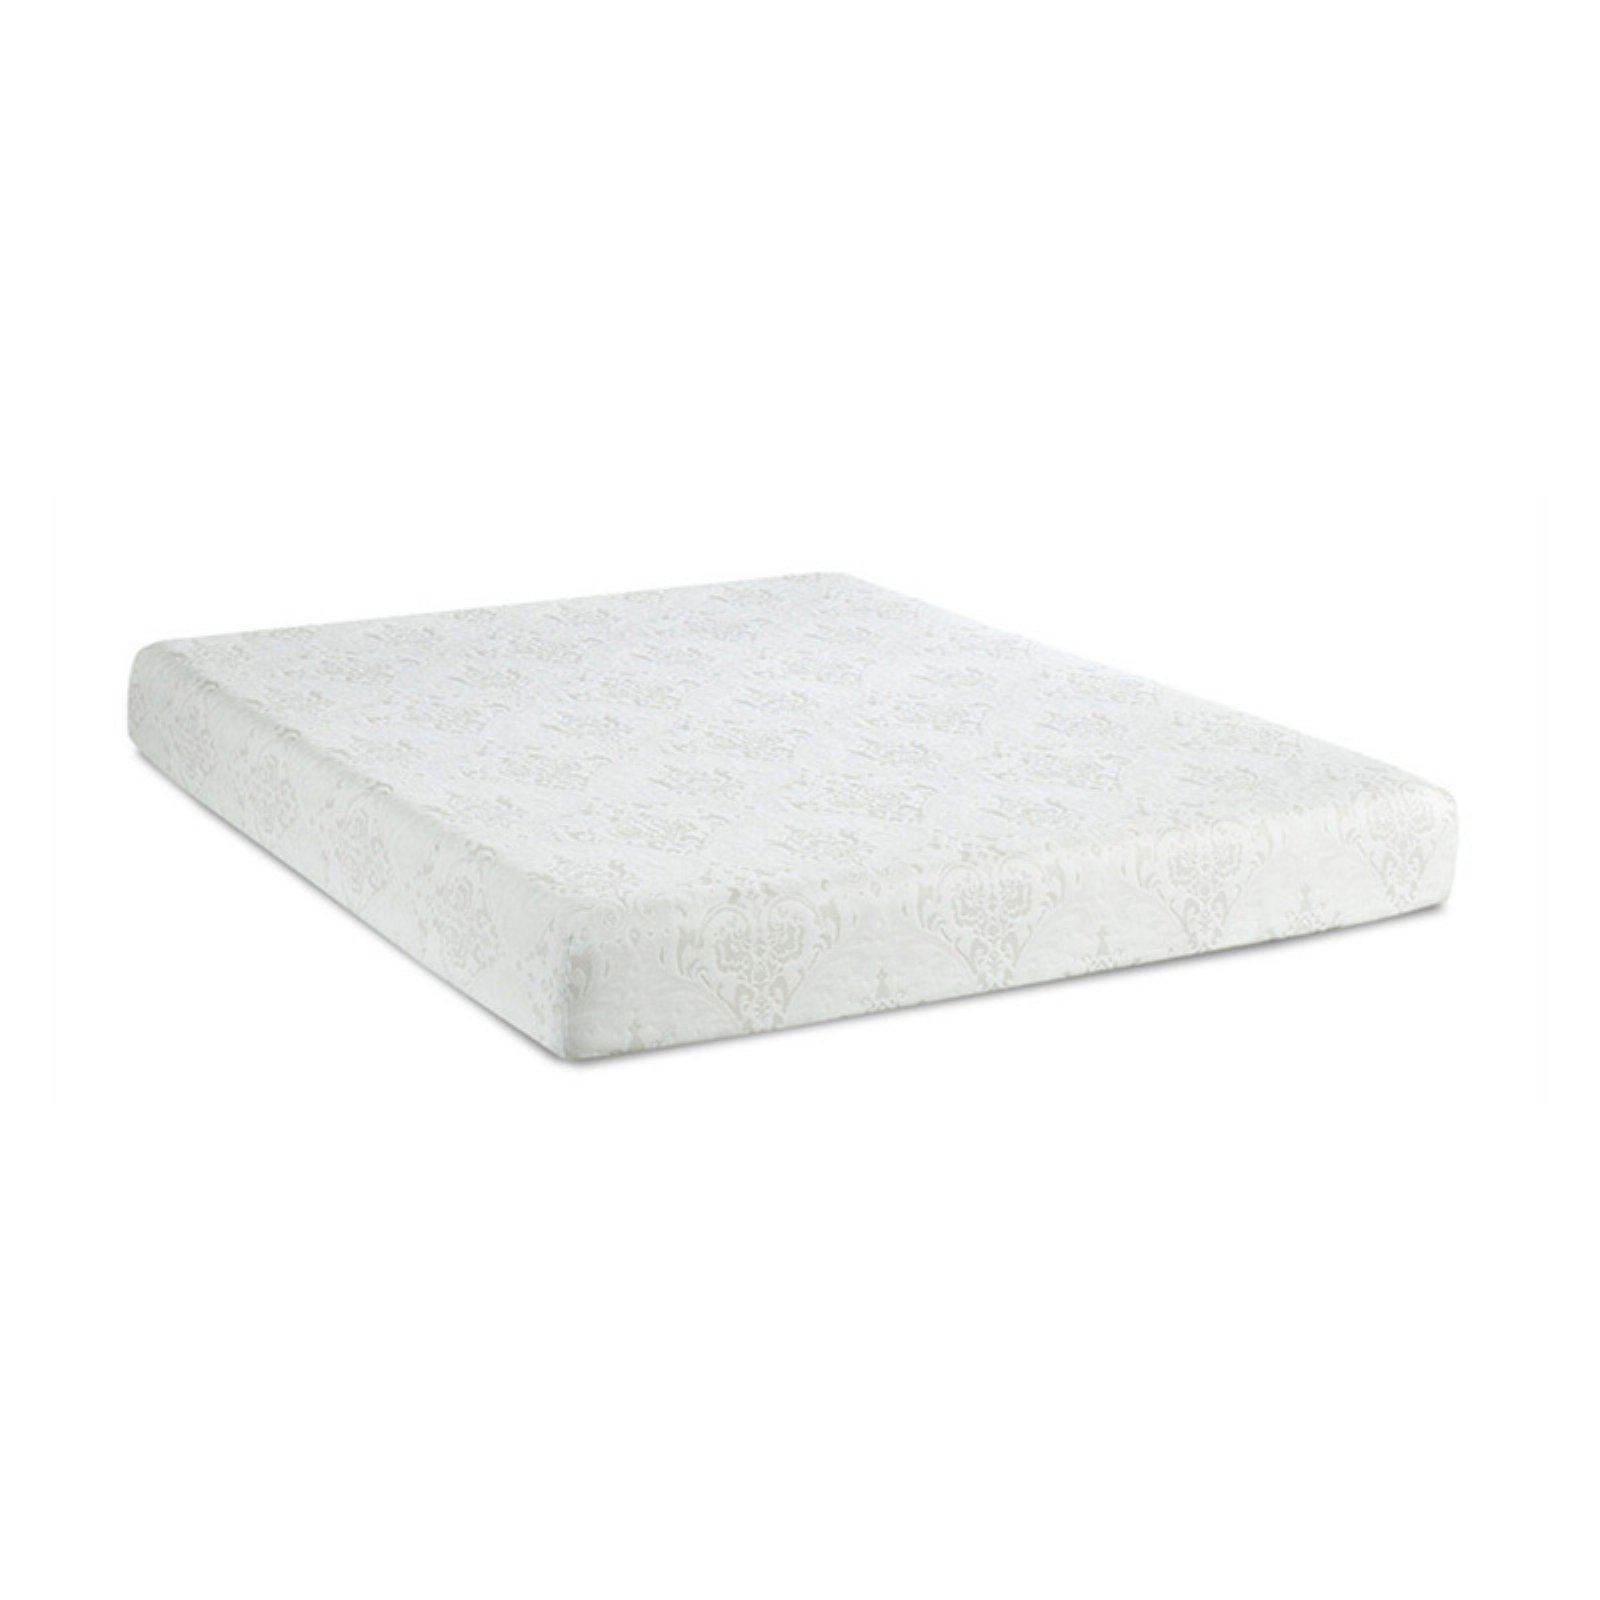 Enso Sleep System Hampton Mattress by Overstock